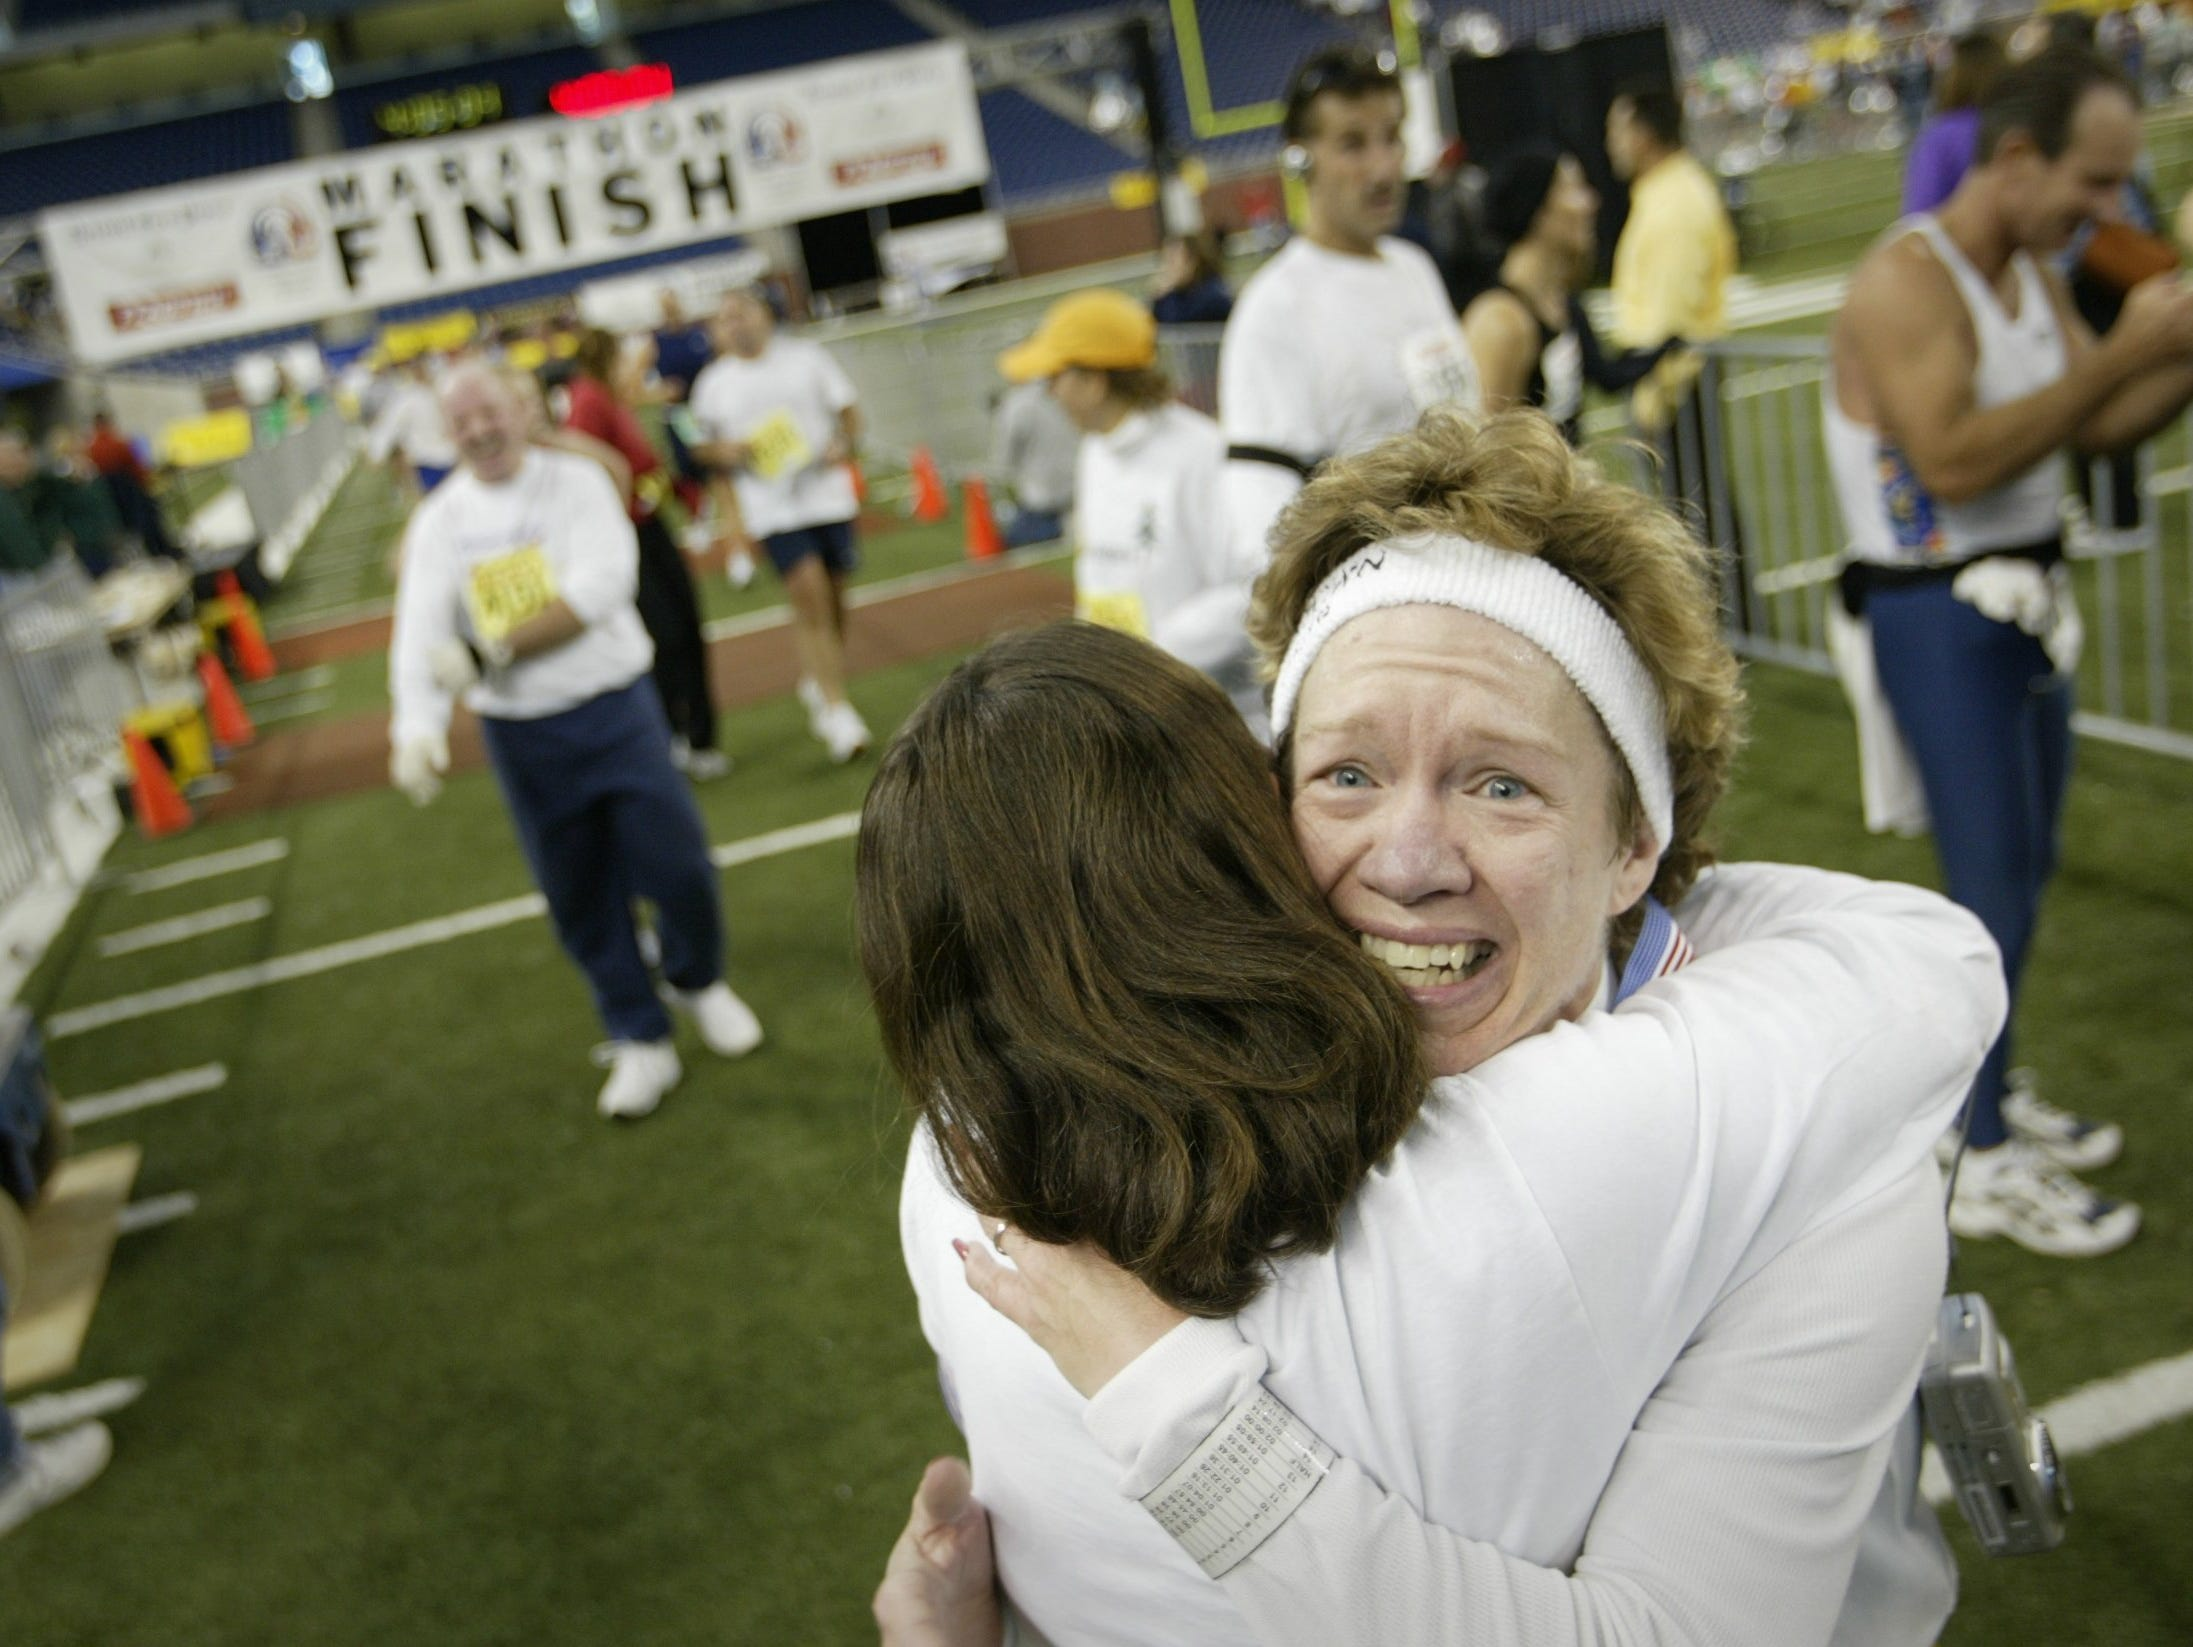 Colleen Sholtis of Rockford, MI, reacts after getting a medal and hug from volunteer Lindsay Parsell of Troy upon finishing the 26th Annual Detroit Free Press / Flagstar Bank Marathon on Sunday October 5, 2003.